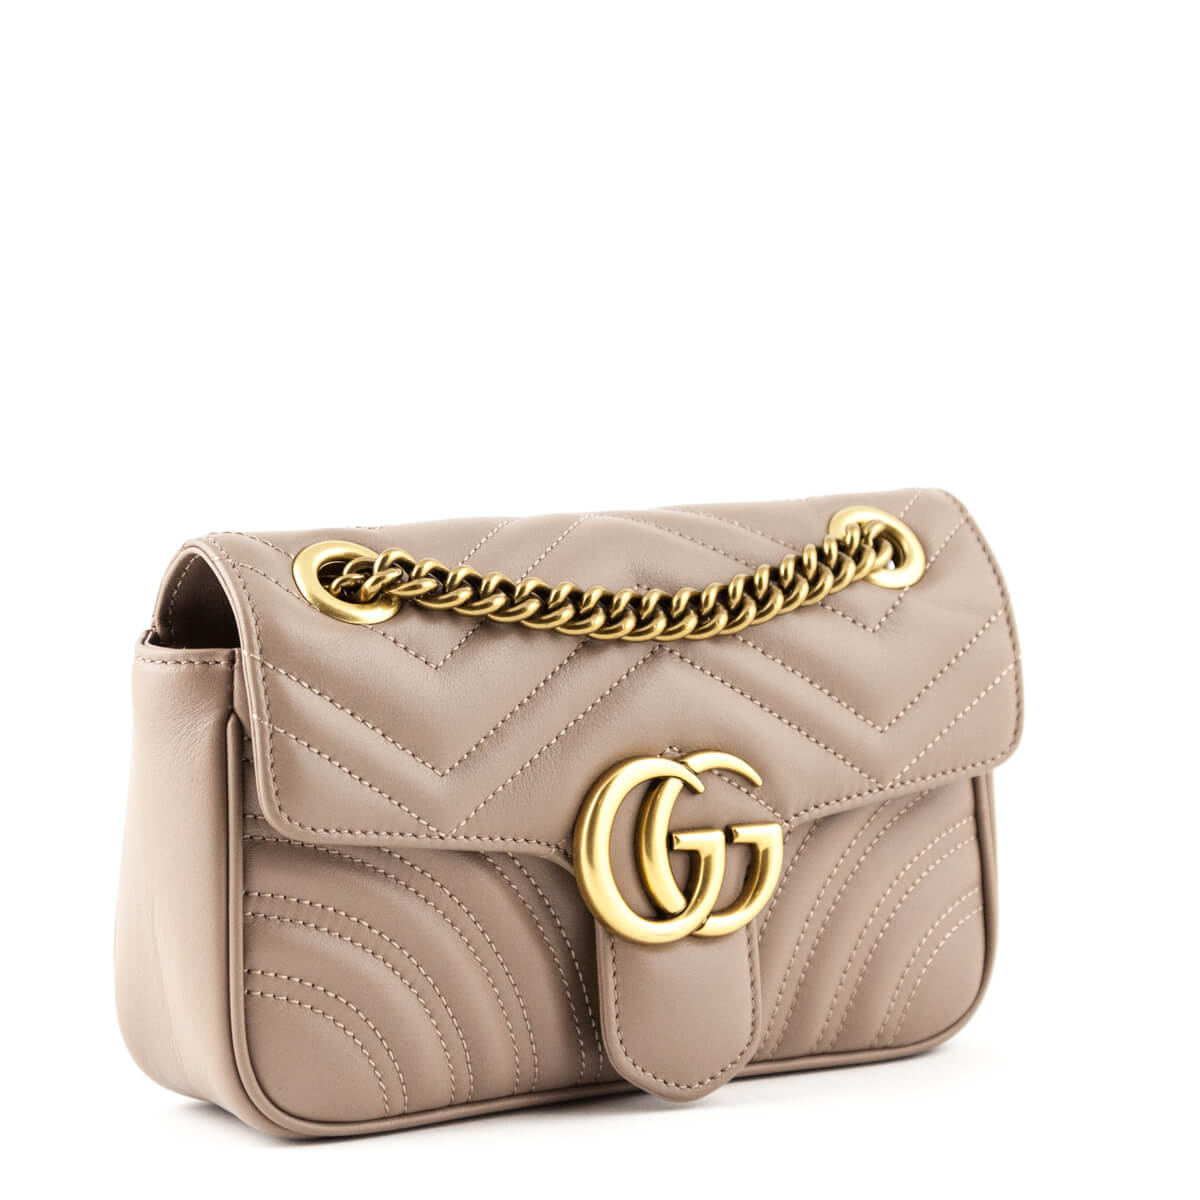 f33e4b229e0 ... Gucci Rose Matelasse Calfskin Mini GG Marmont 2.0 Bag - LOVE that BAG -  Preowned Authentic ...